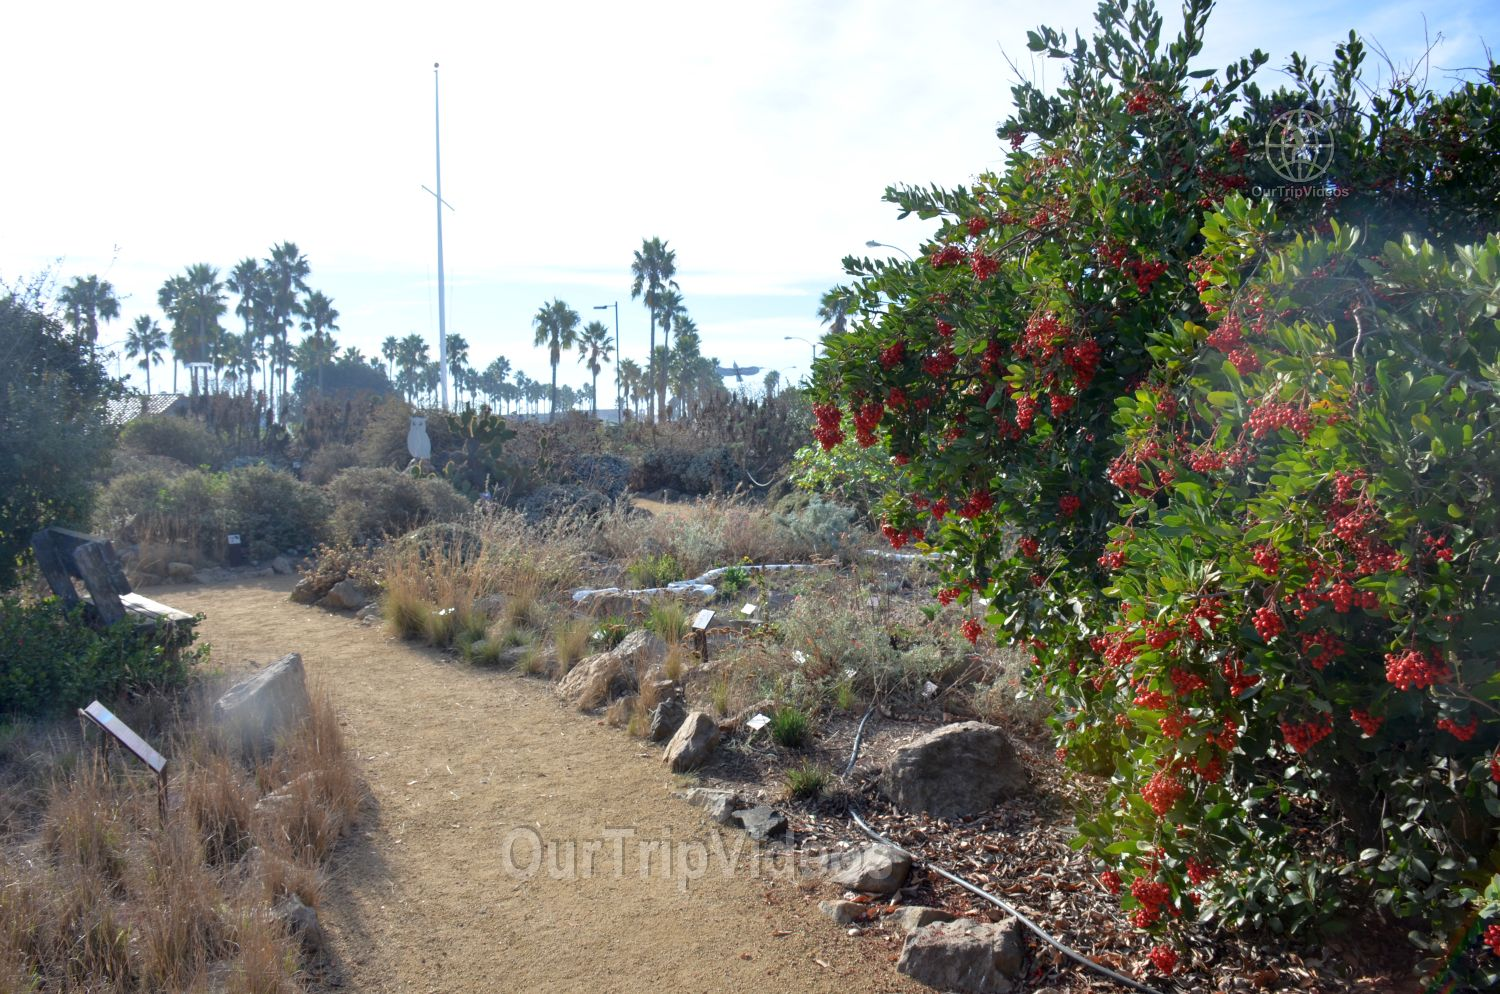 The Robert JL Visitor Center and Harbor cove beach, Ventura, CA, USA - Picture 12 of 25